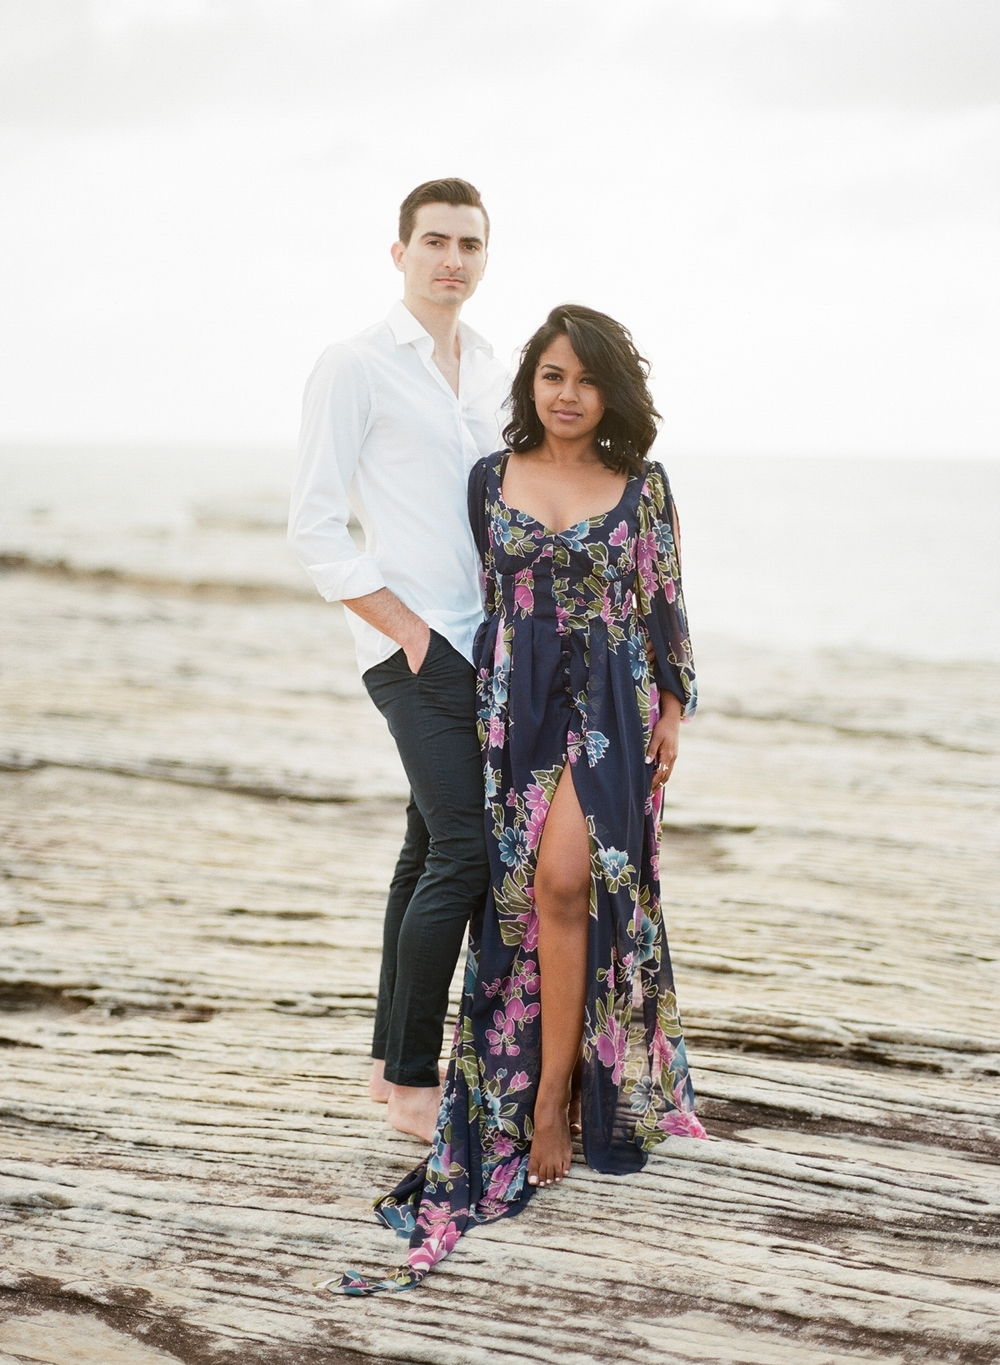 Coastal Sydney couples session by Mr Edwards Photography_0737_1131.jpg